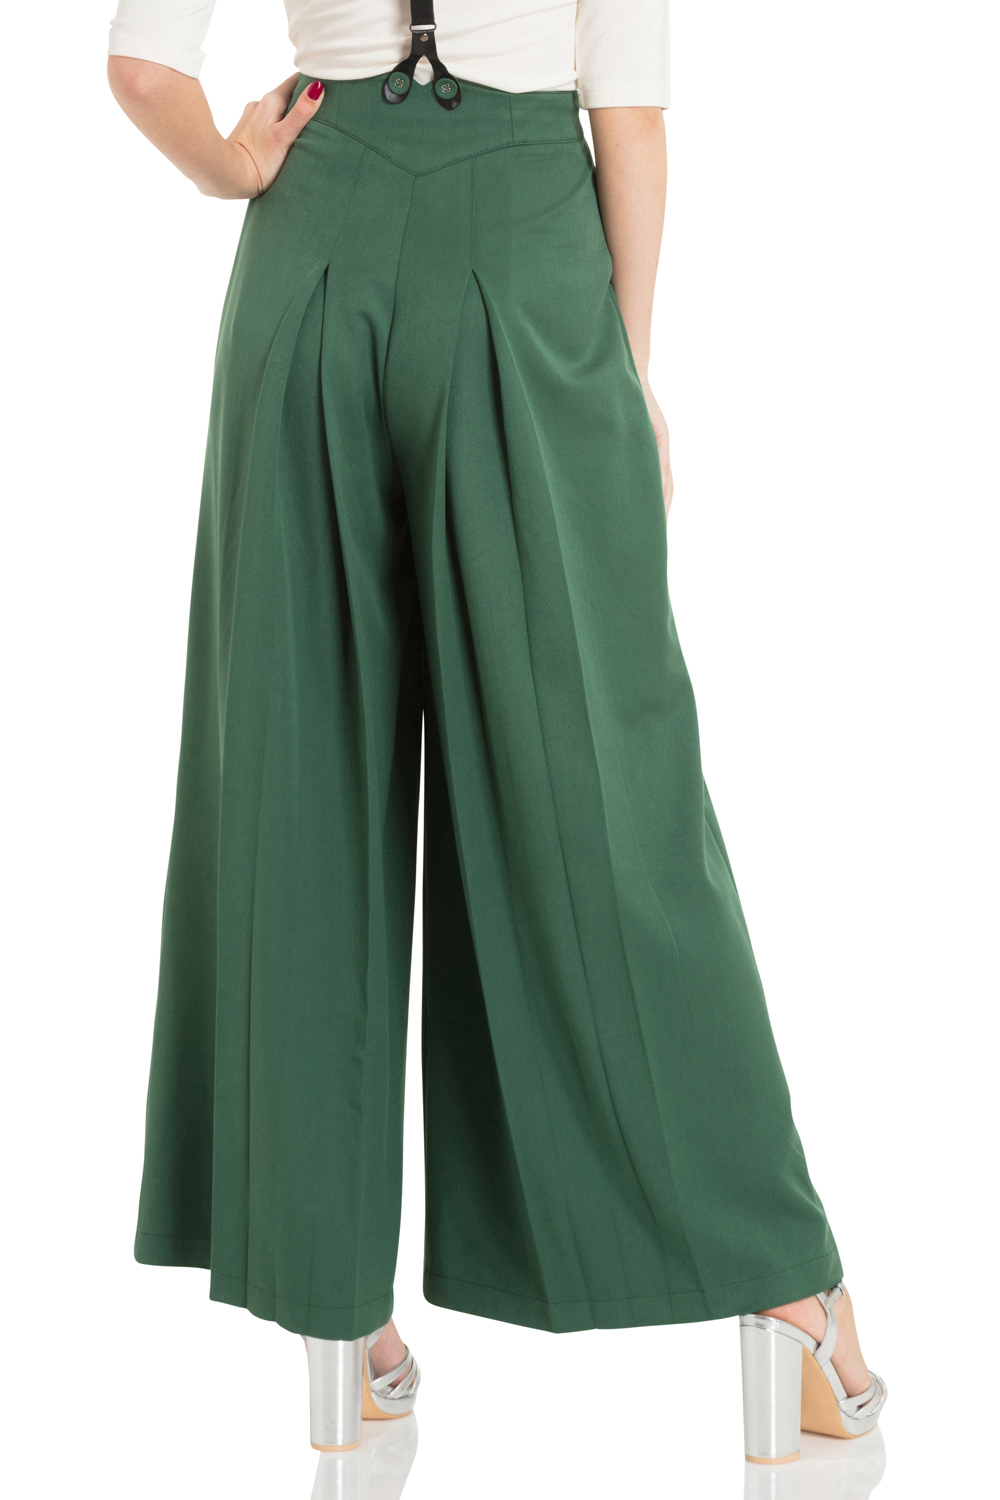 Laura Green 40s Style Trousers